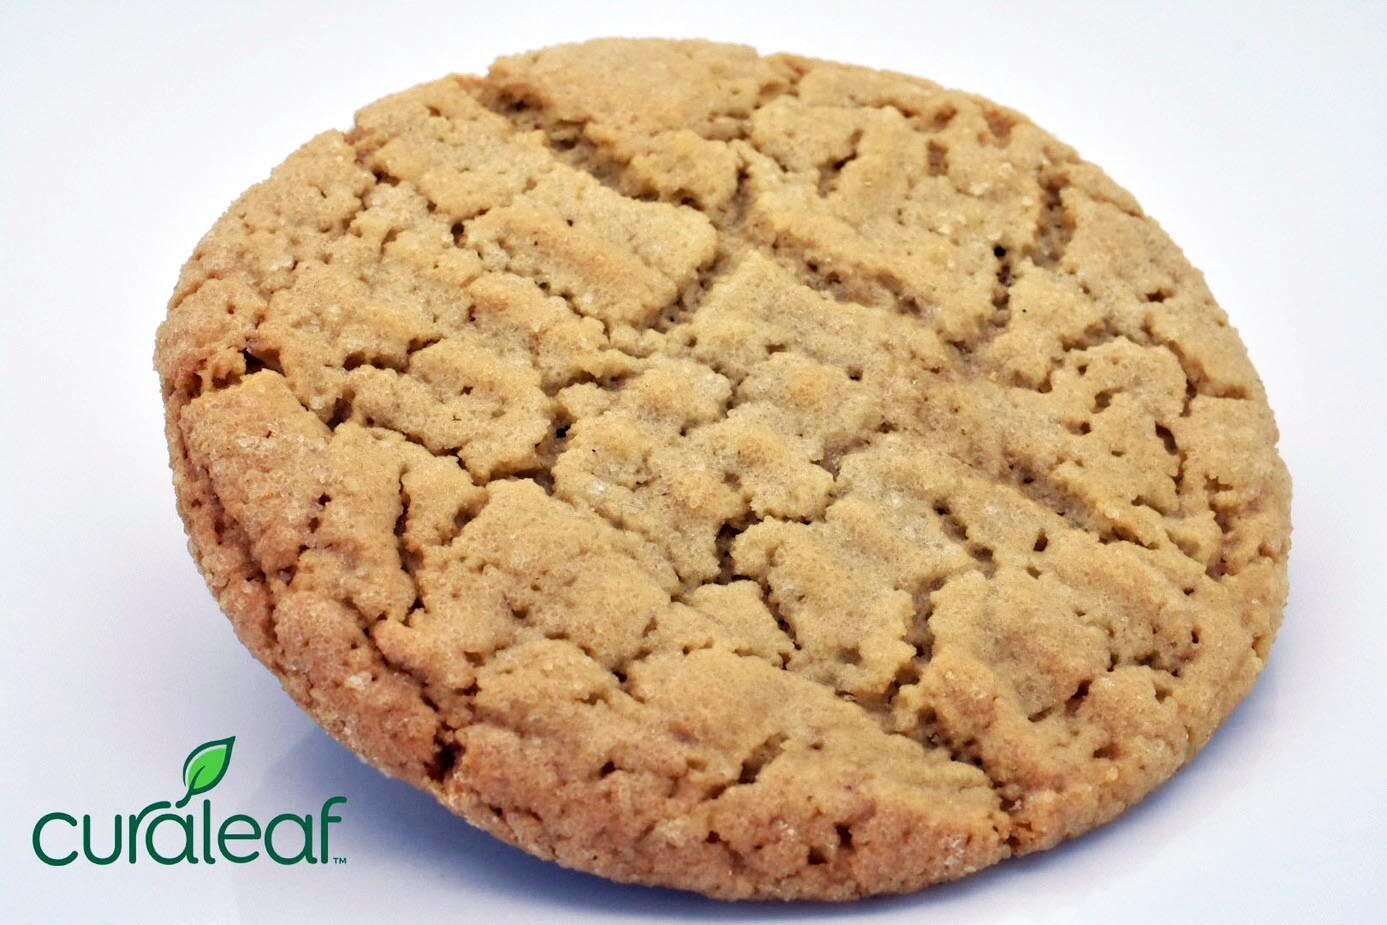 Peanut Butter Cookie 8555 (185 mg THC x 1 Cookie)(CL)